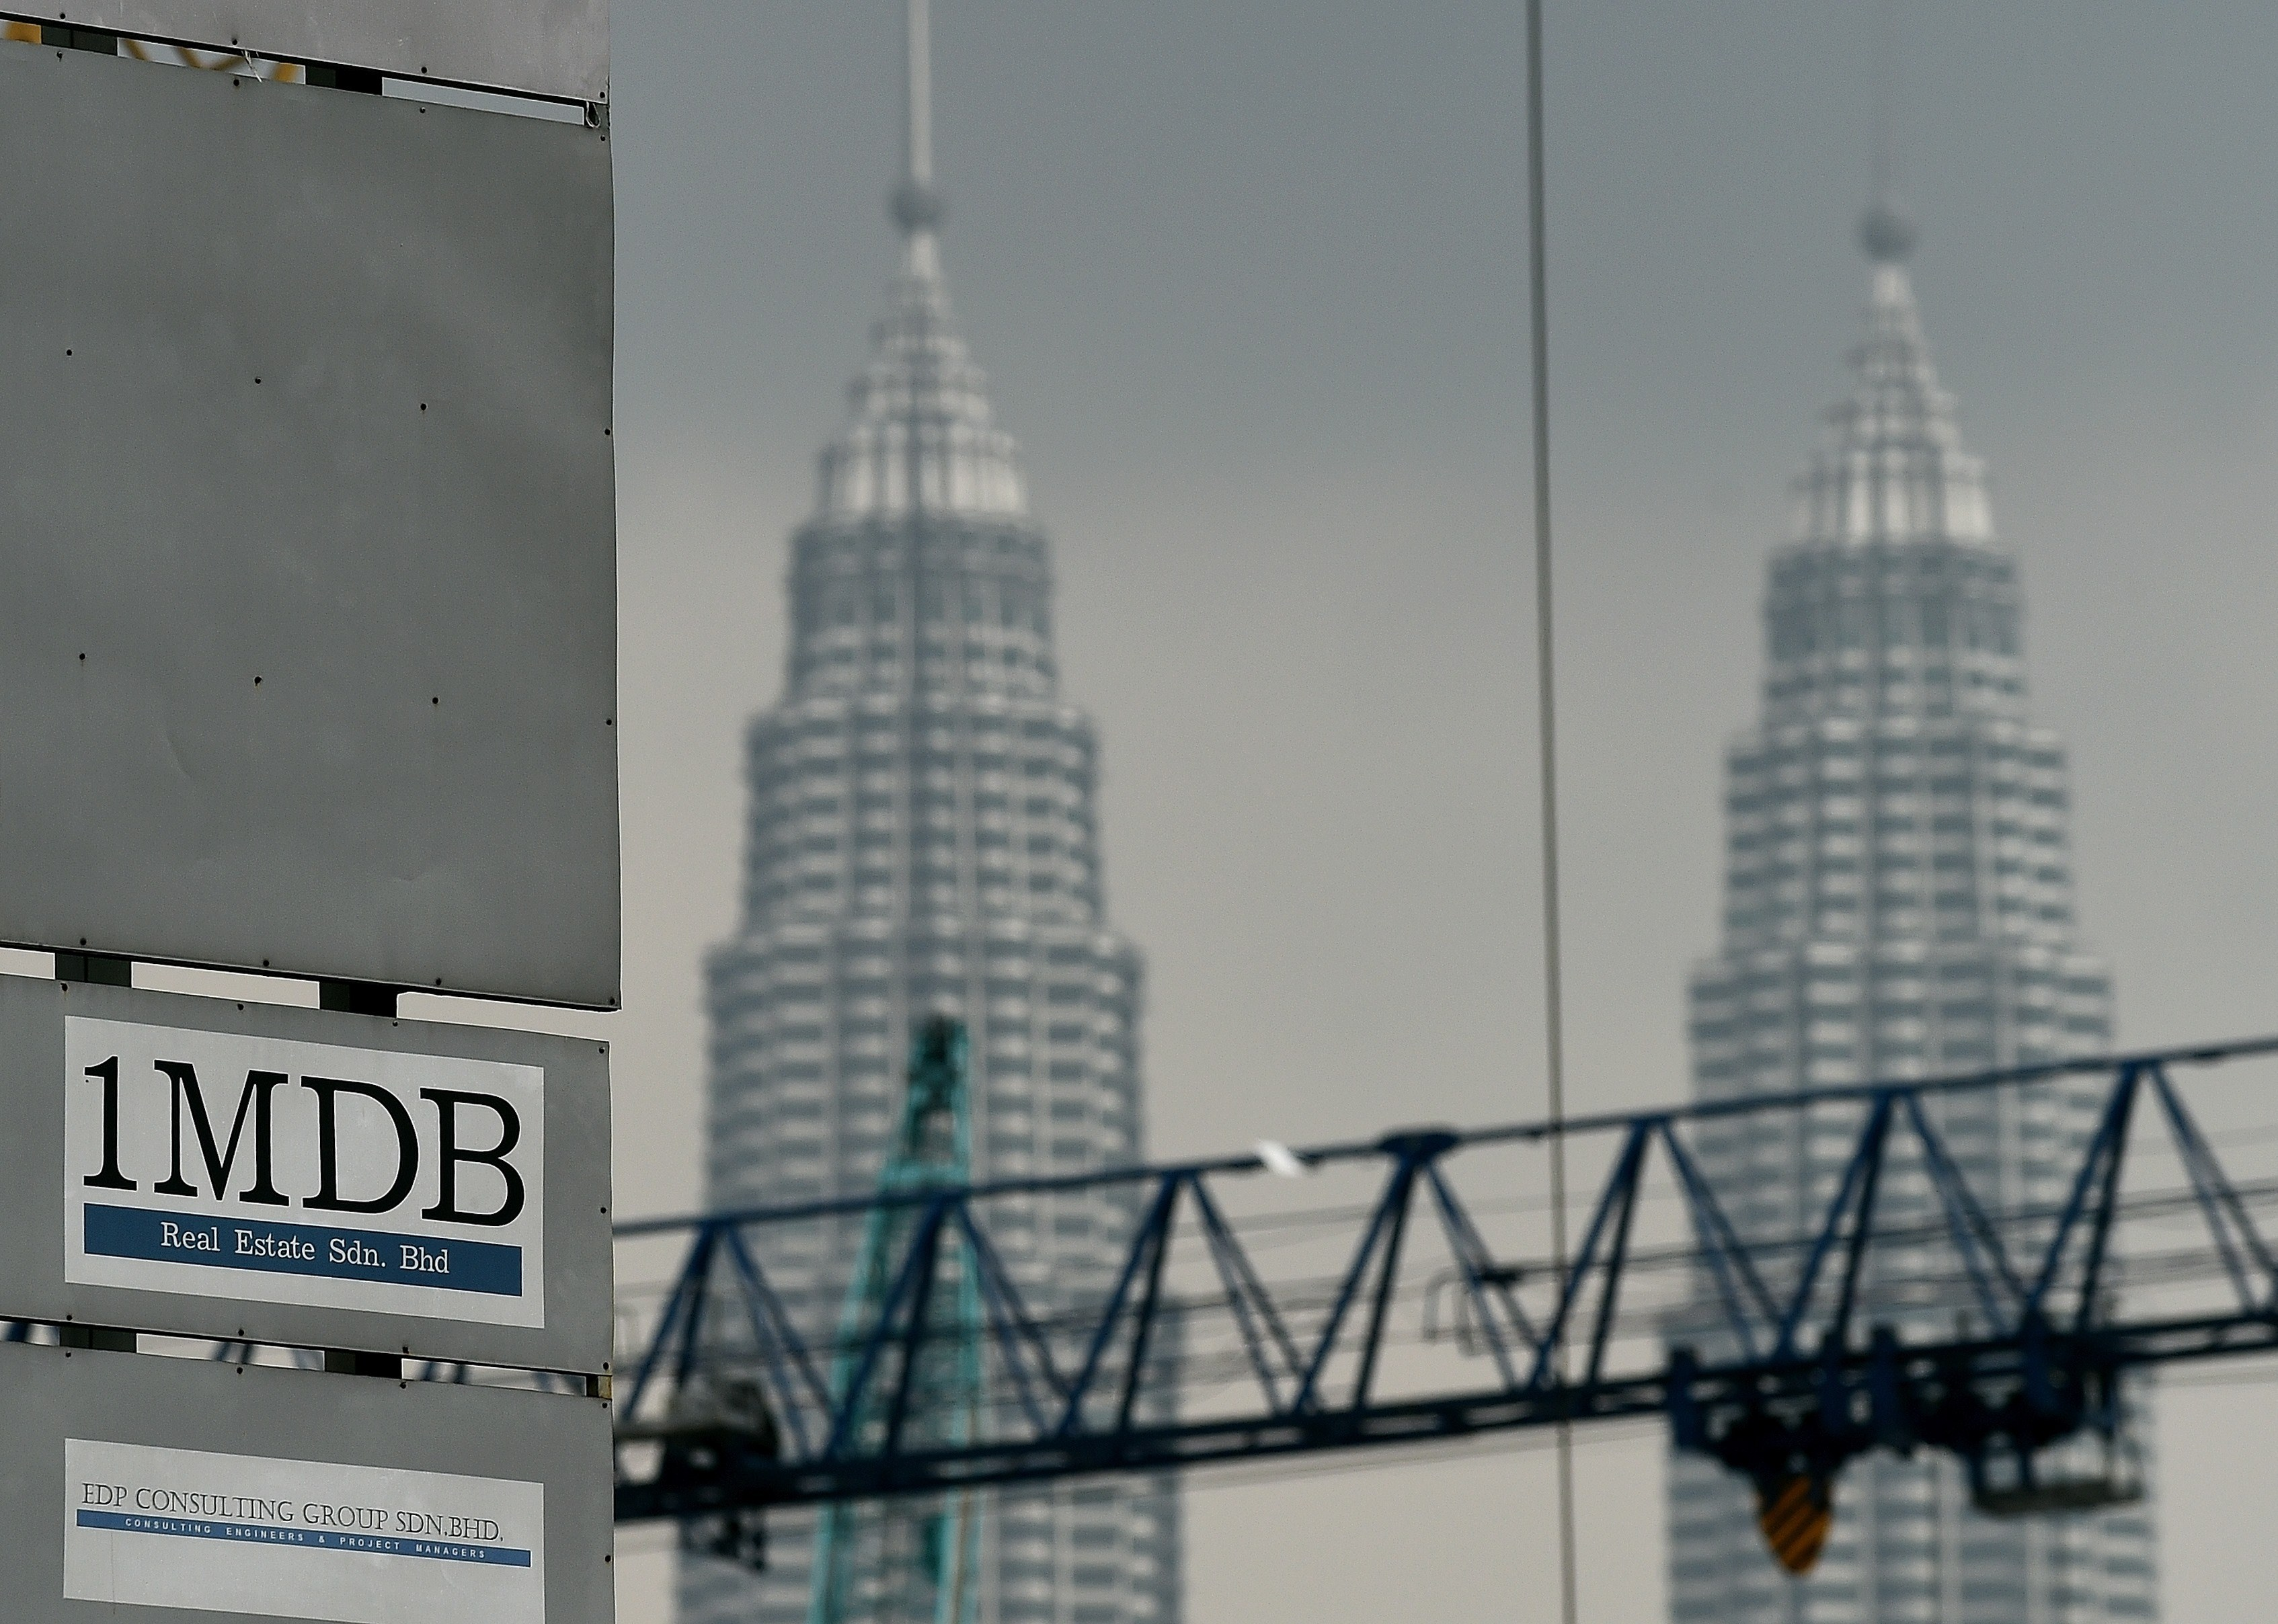 The 1MDB logo is seen on a billboard in Kuala Lumpur on July 3, 2015